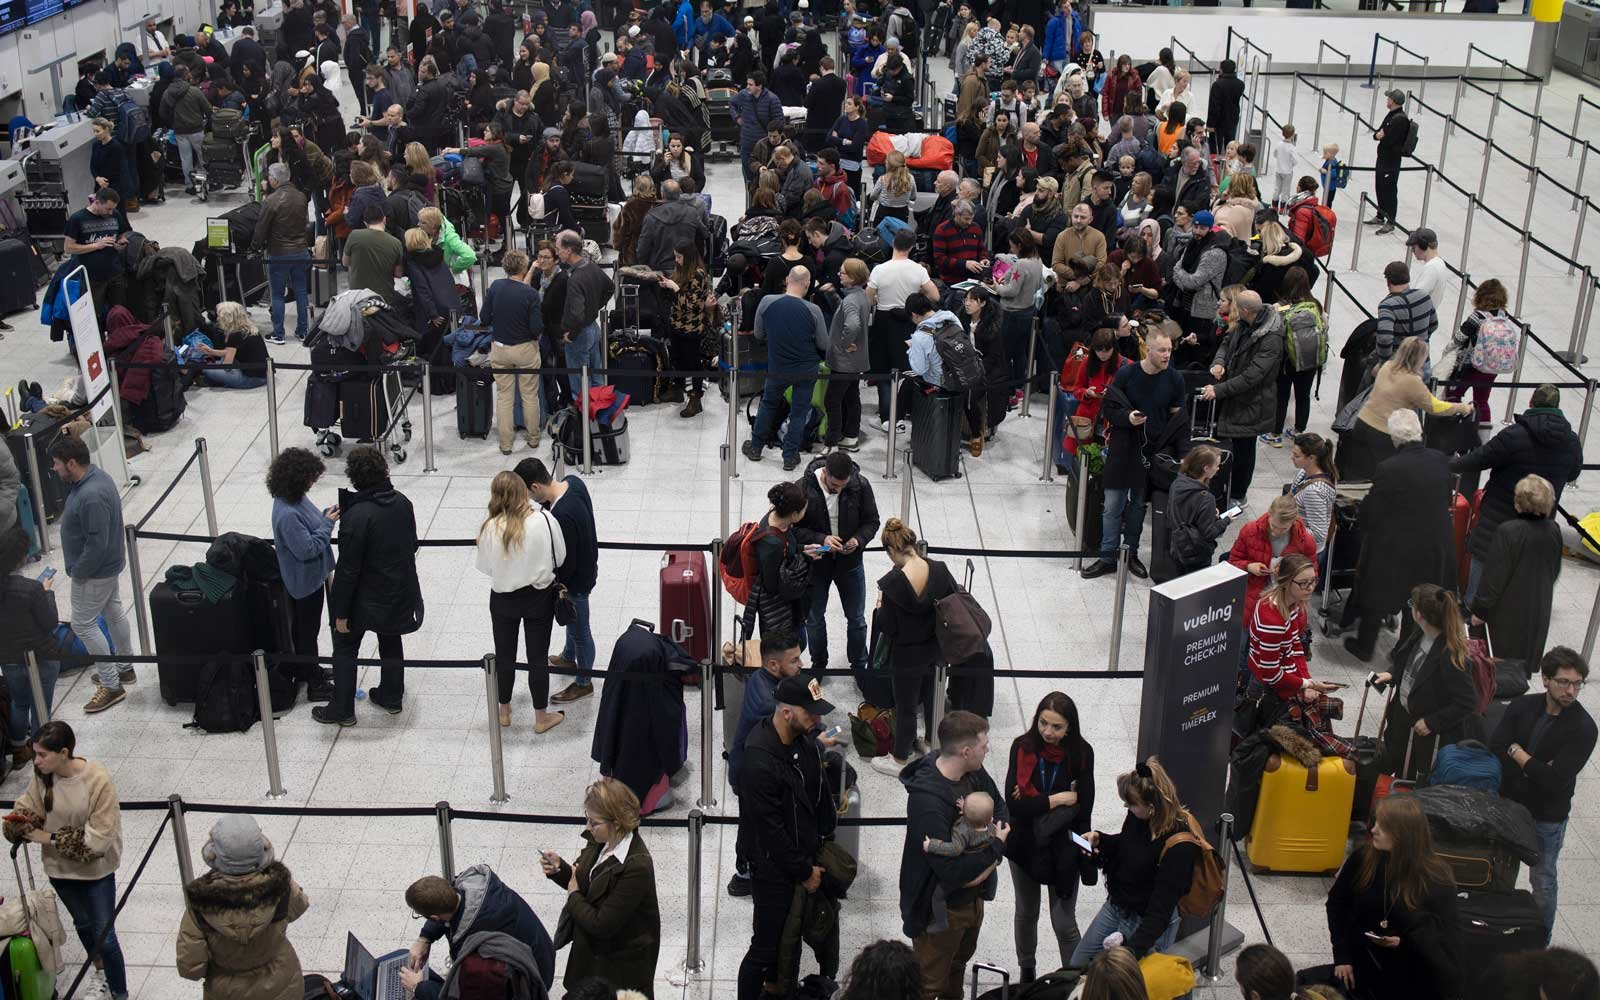 Passengers wait for announcements at Gatwick South Terminal on December 20, 2018 in London, England.